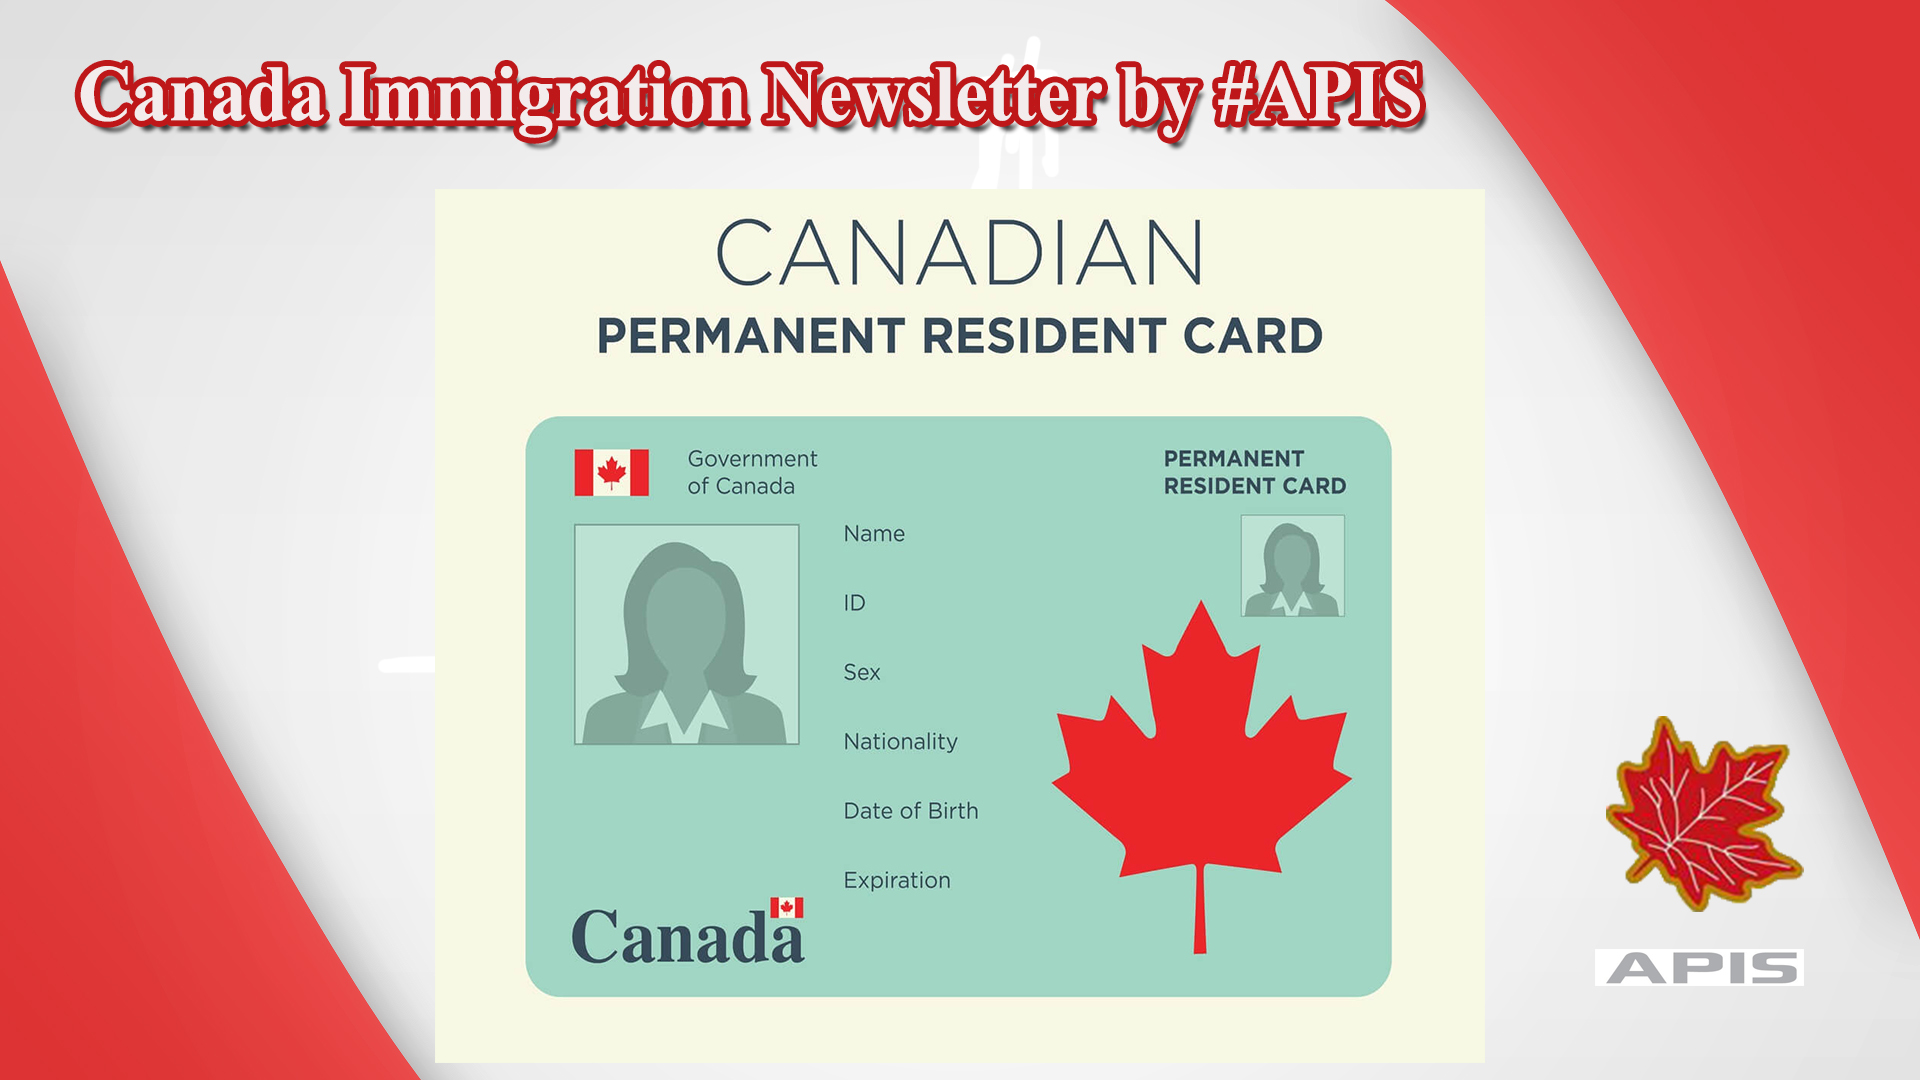 Canada Immigration Newsletter by #APIS